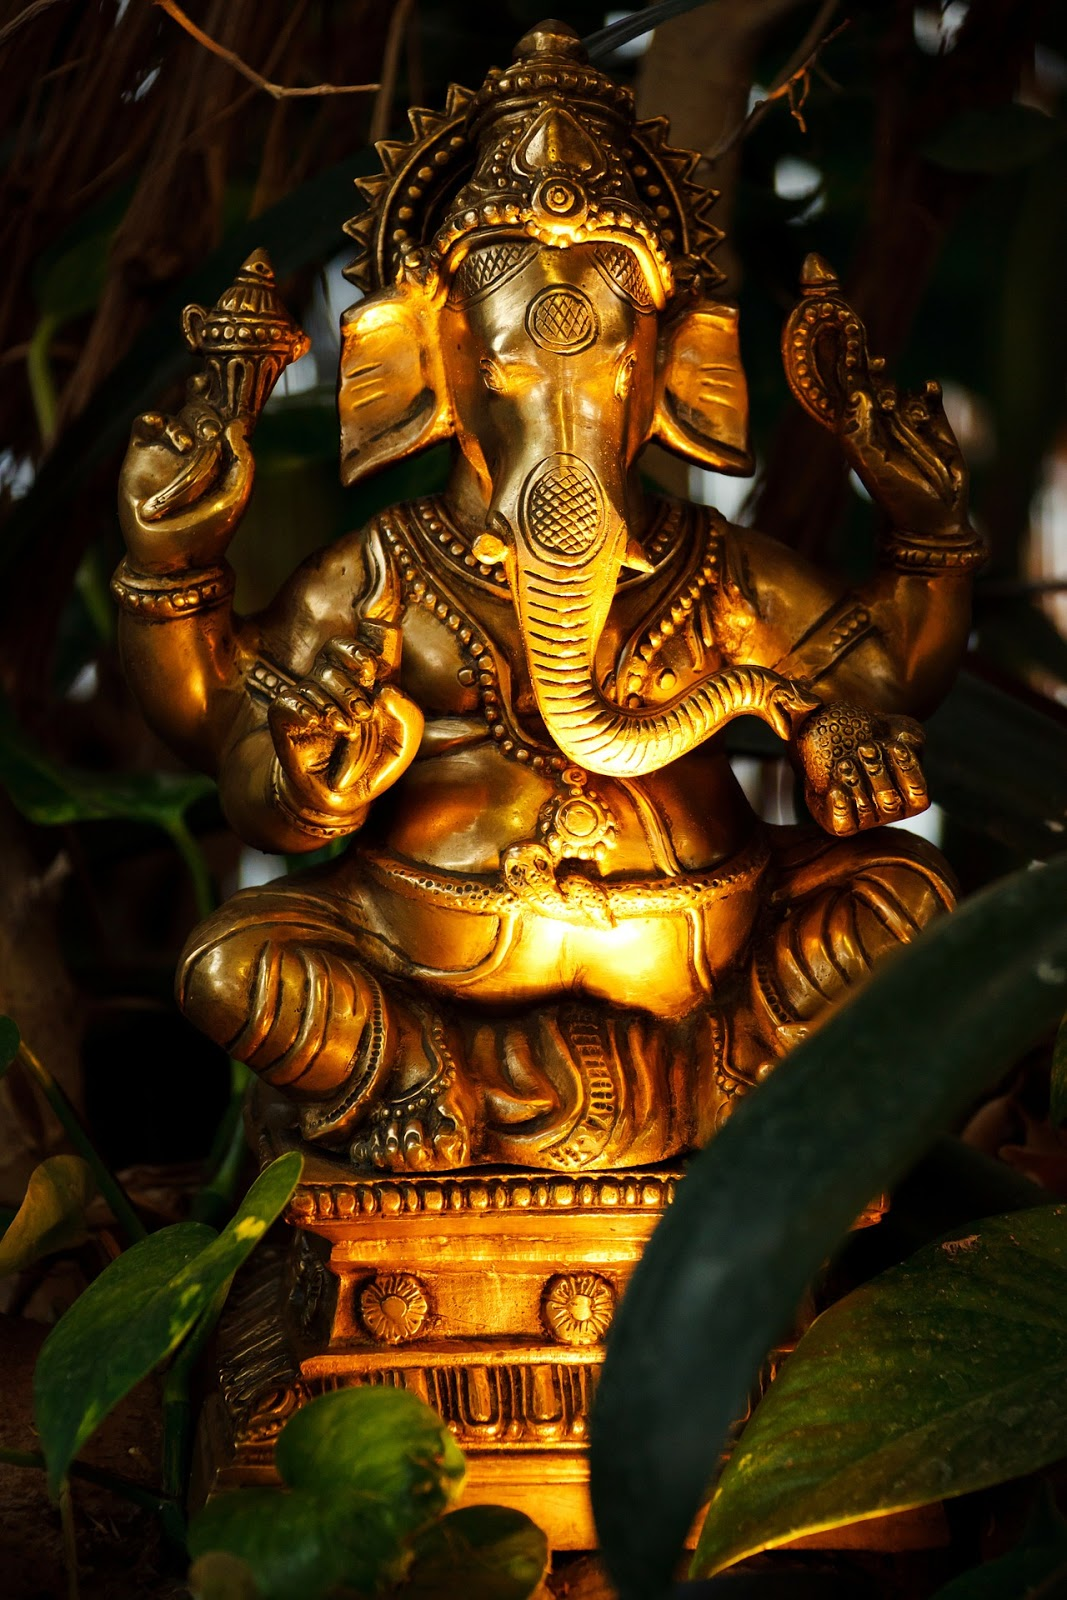 The Ganesh Chaturthi Festival